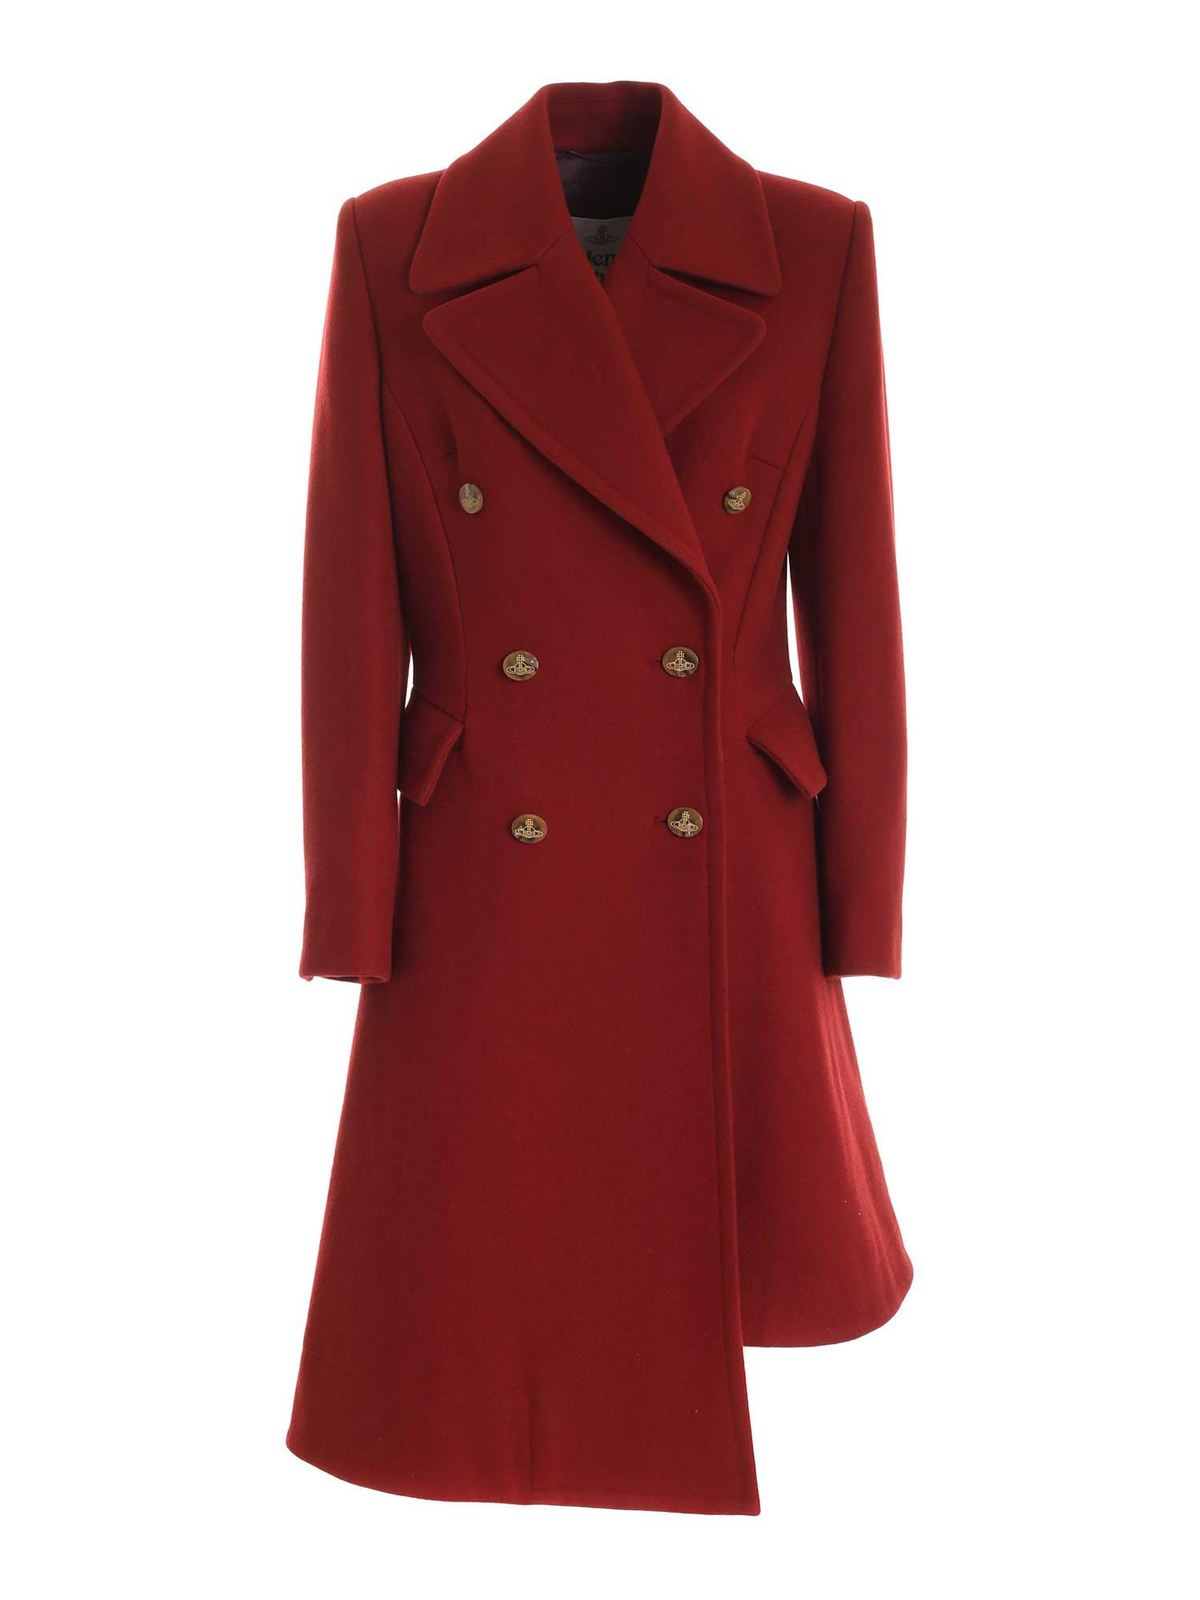 Vivienne Westwood DOUBLE-BREASTED COAT IN RED